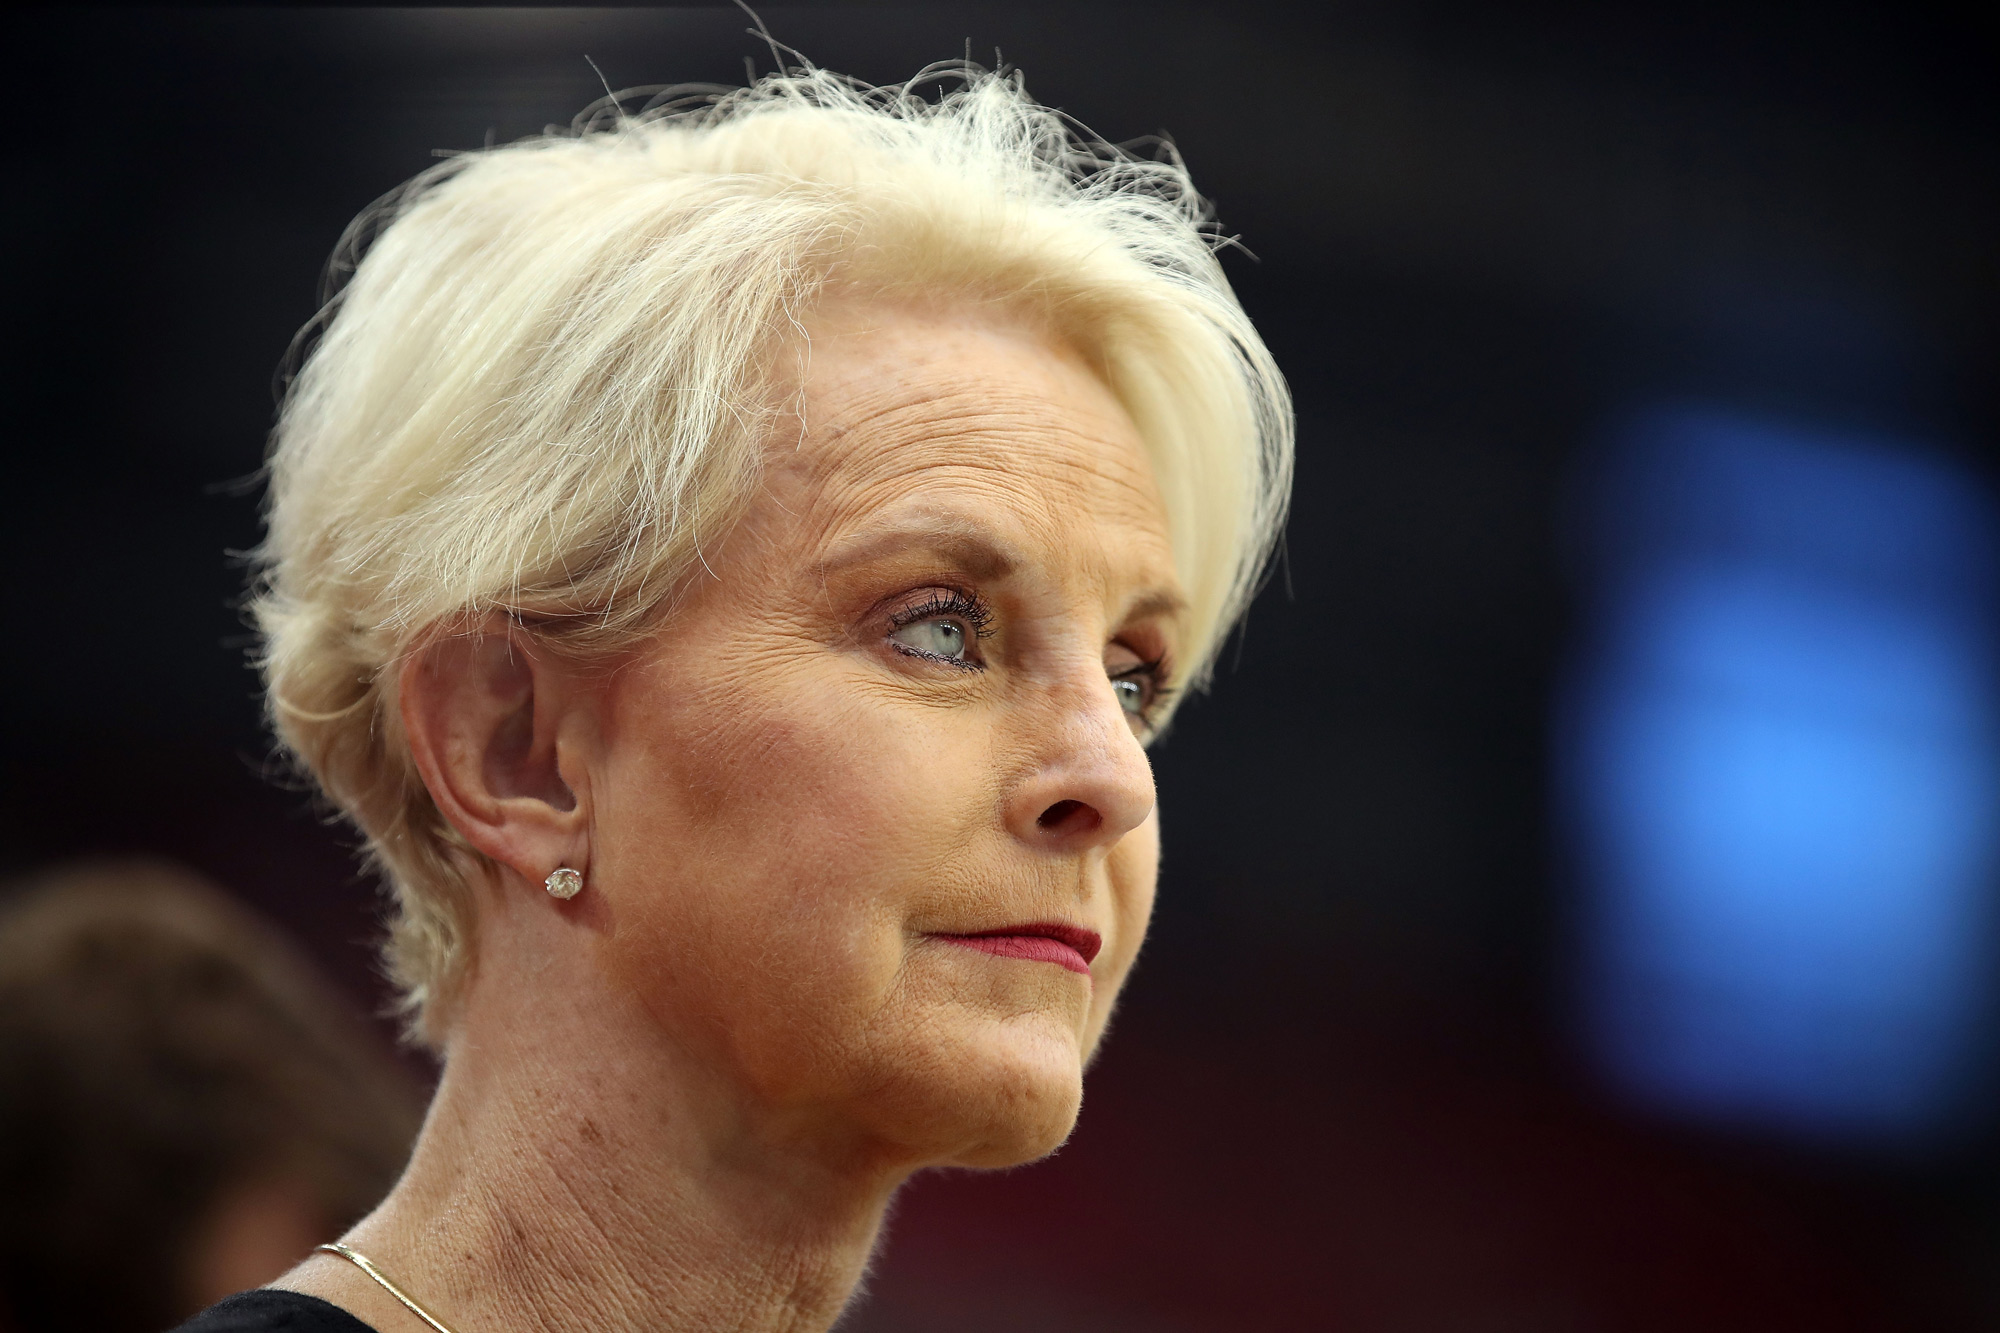 Cindy McCain, wife of the late U.S. Senator John McCain, stands on the sidelines before a game at State Farm Stadium on September 9, 2018 in Glendale, Arizona.